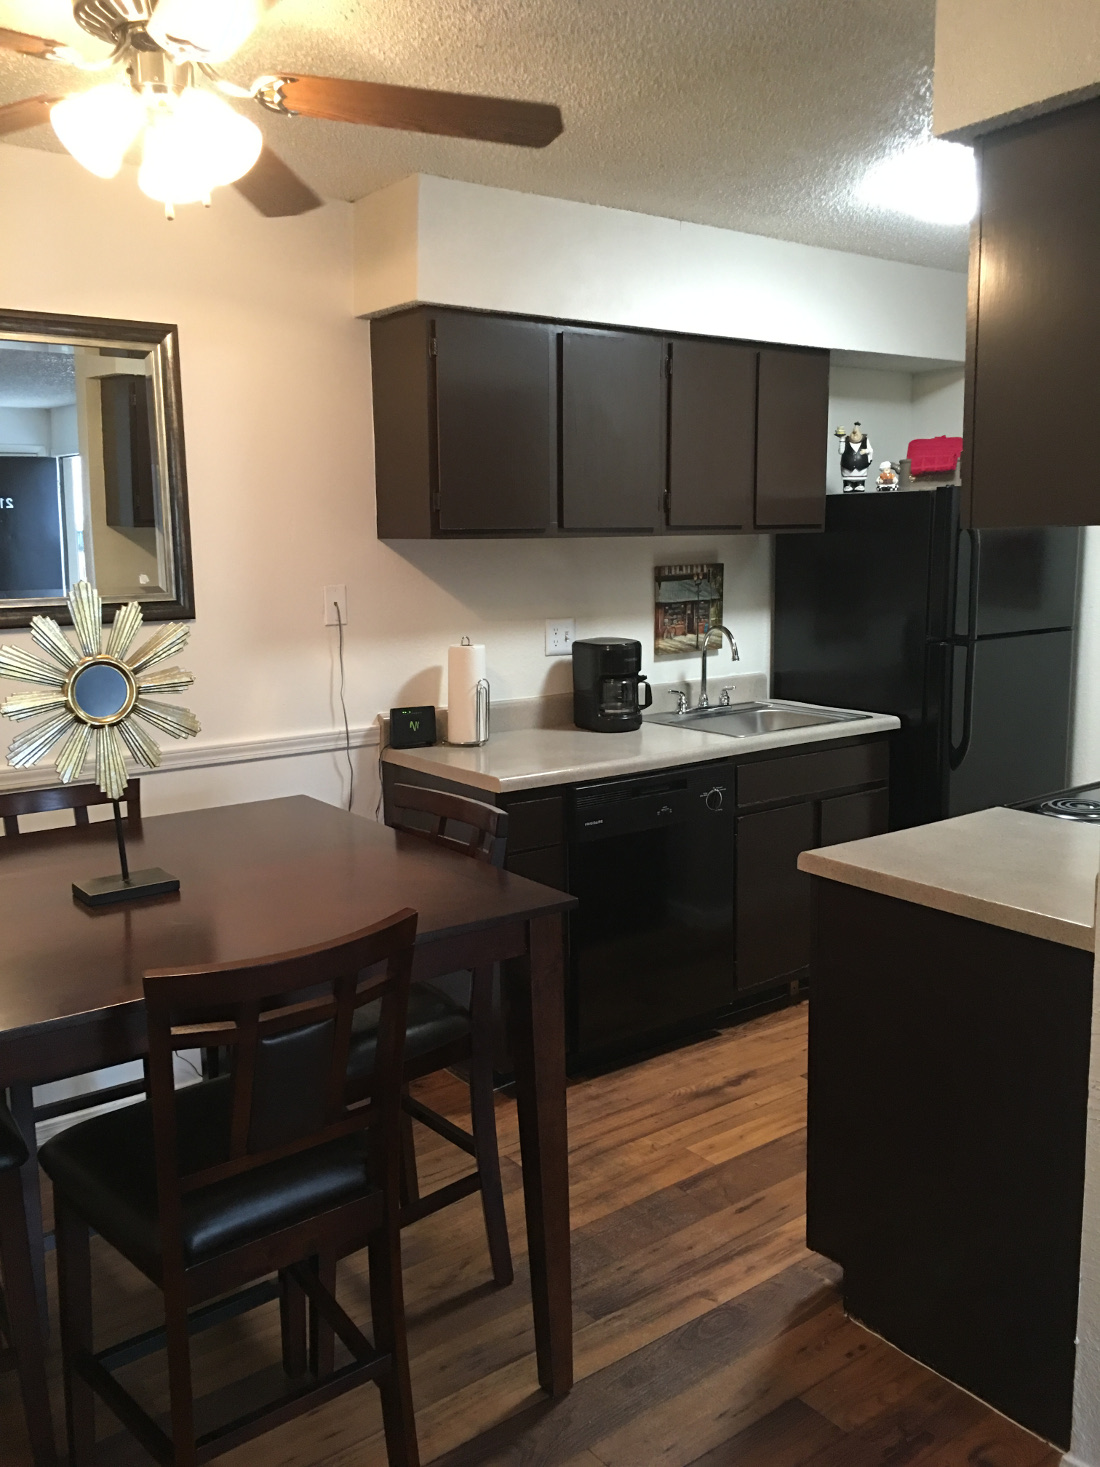 Kitchen and Dining Area at Union Point Apartments in Tulsa, OK